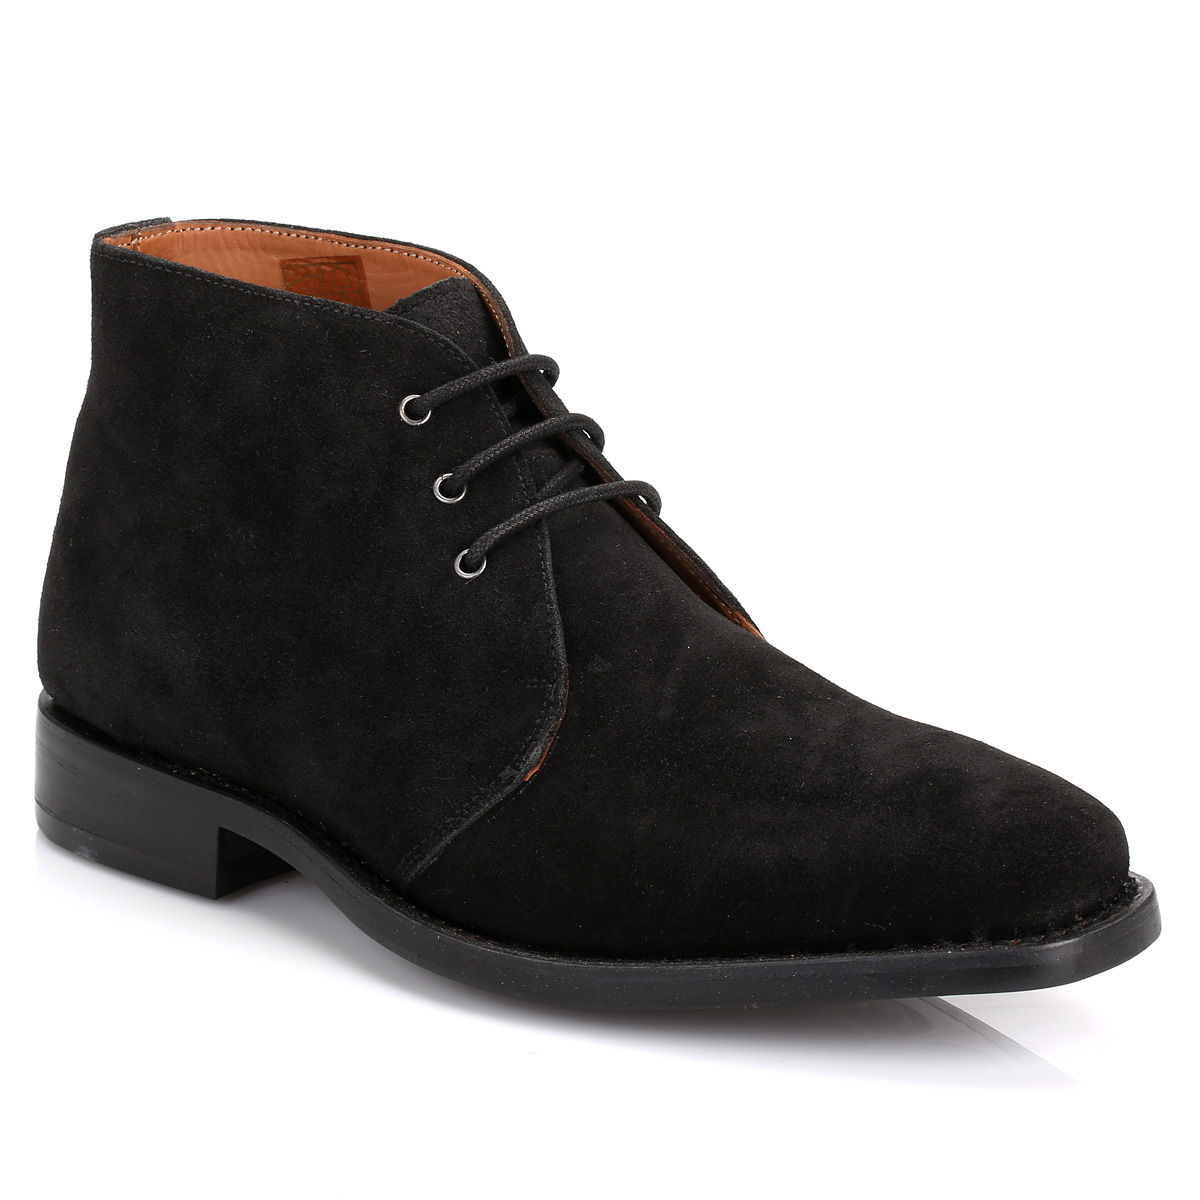 Details about J.G Harrisons Mens Ankle Boots Black Suede Chukka Lace ...